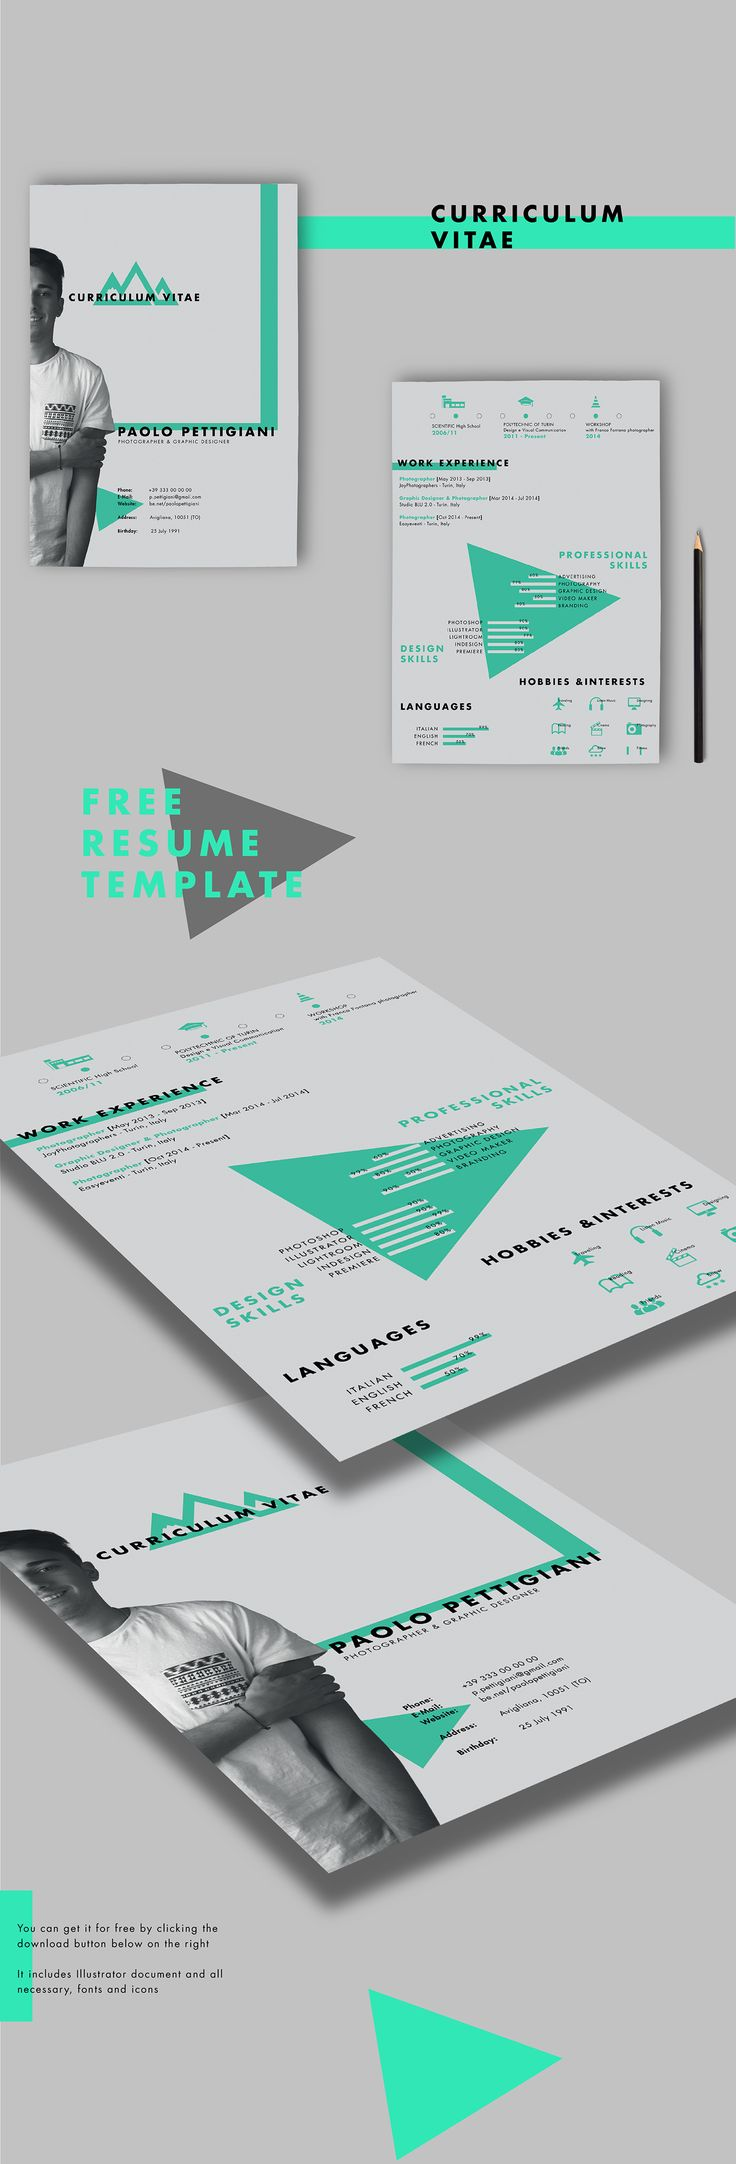 25 best cv images on Pinterest | Resume design, Carte de visite ...